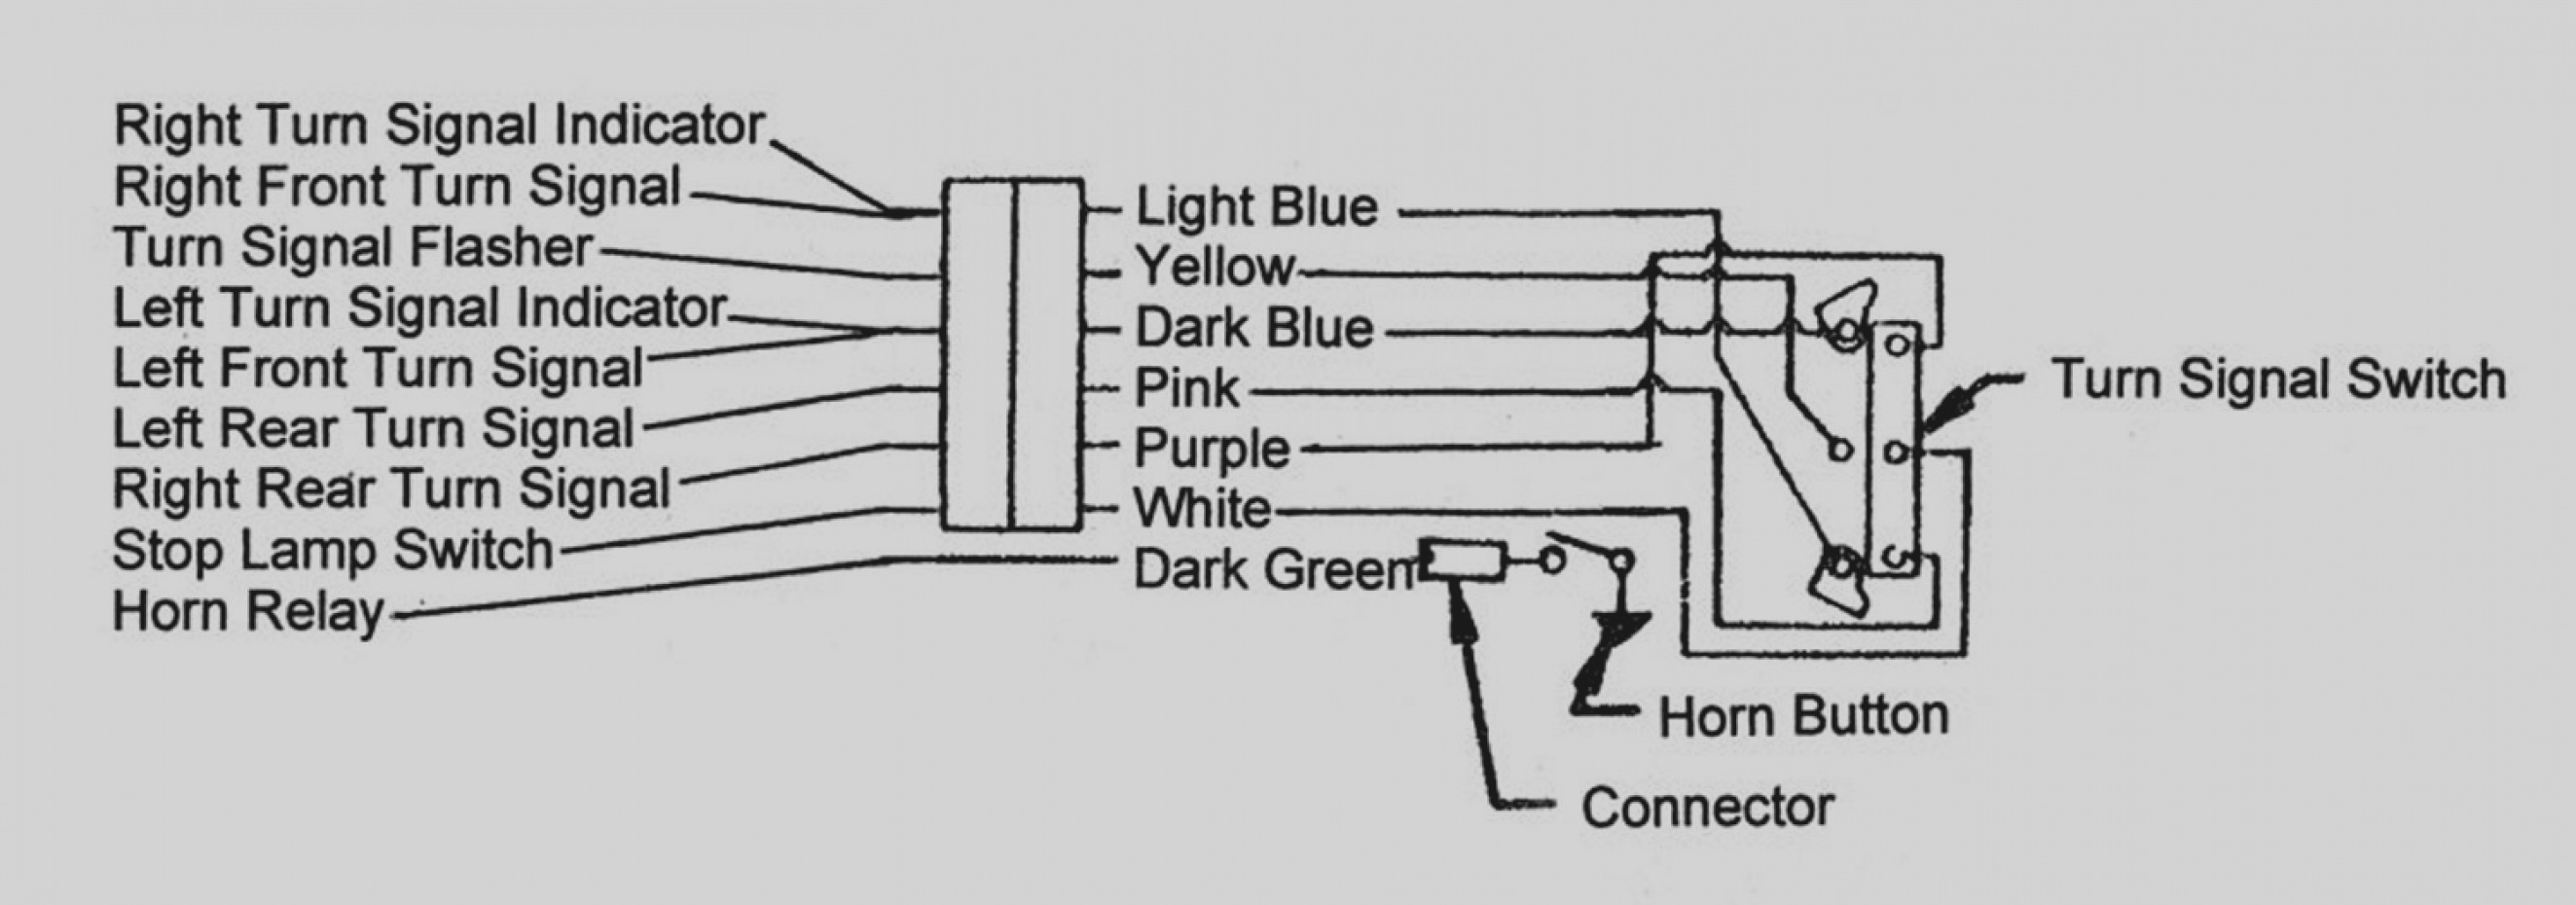 Gm Turn Signal Wiring - Data Wiring Diagram Update